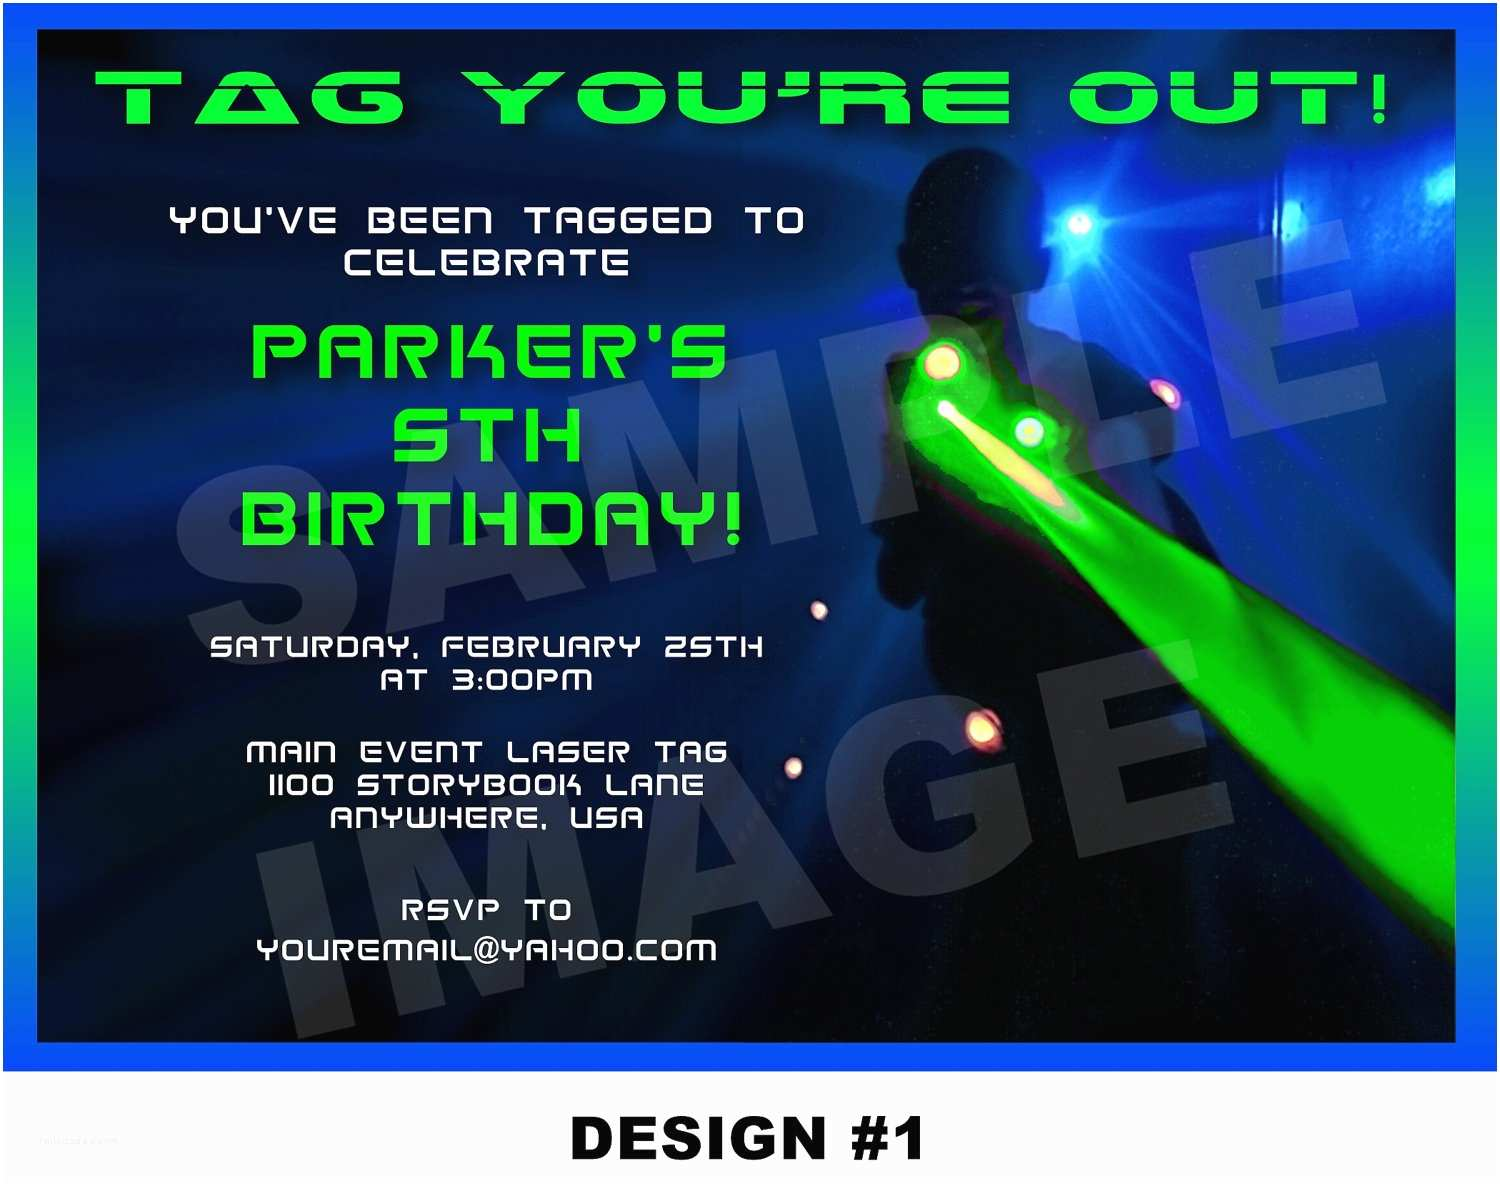 Laser Tag Party Invitations Laser Tag Birthday Party Invitations Ideas